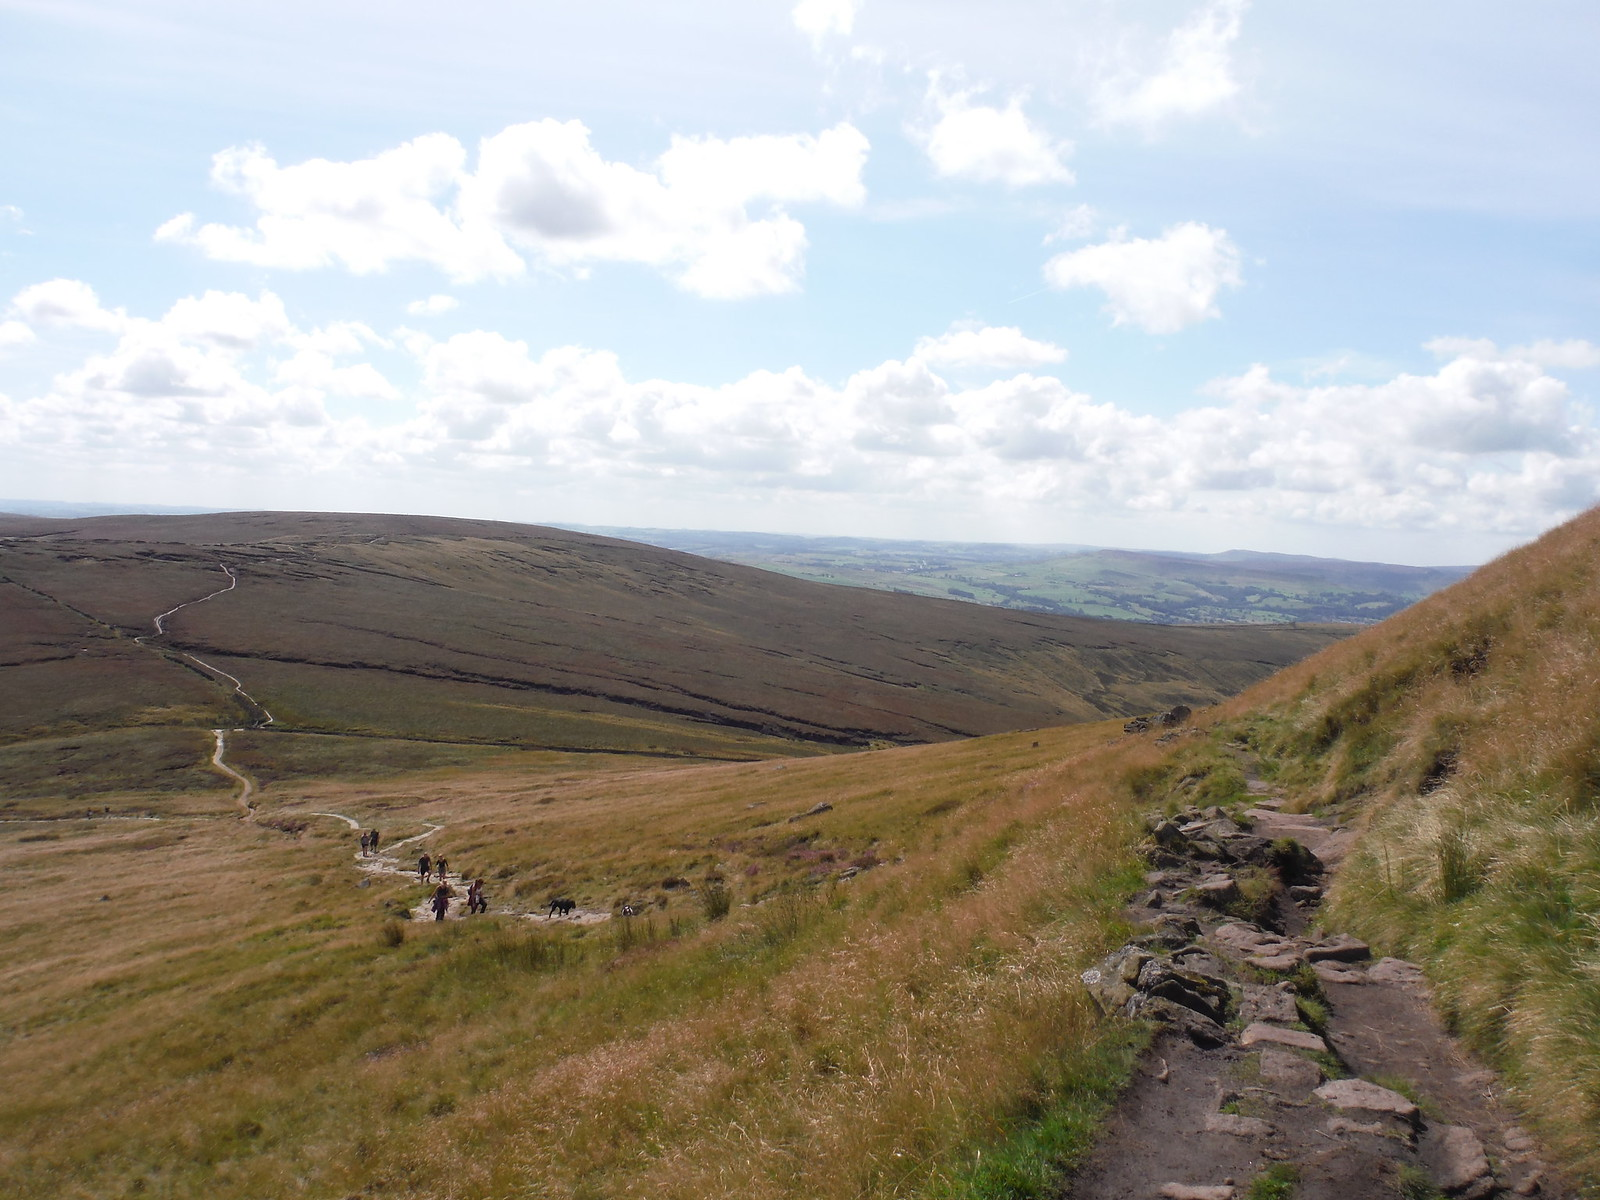 Path from Brown Knoll to Swine's Back SWC Walk 303 - Edale Circular (via Kinder Scout and Mam Tor)